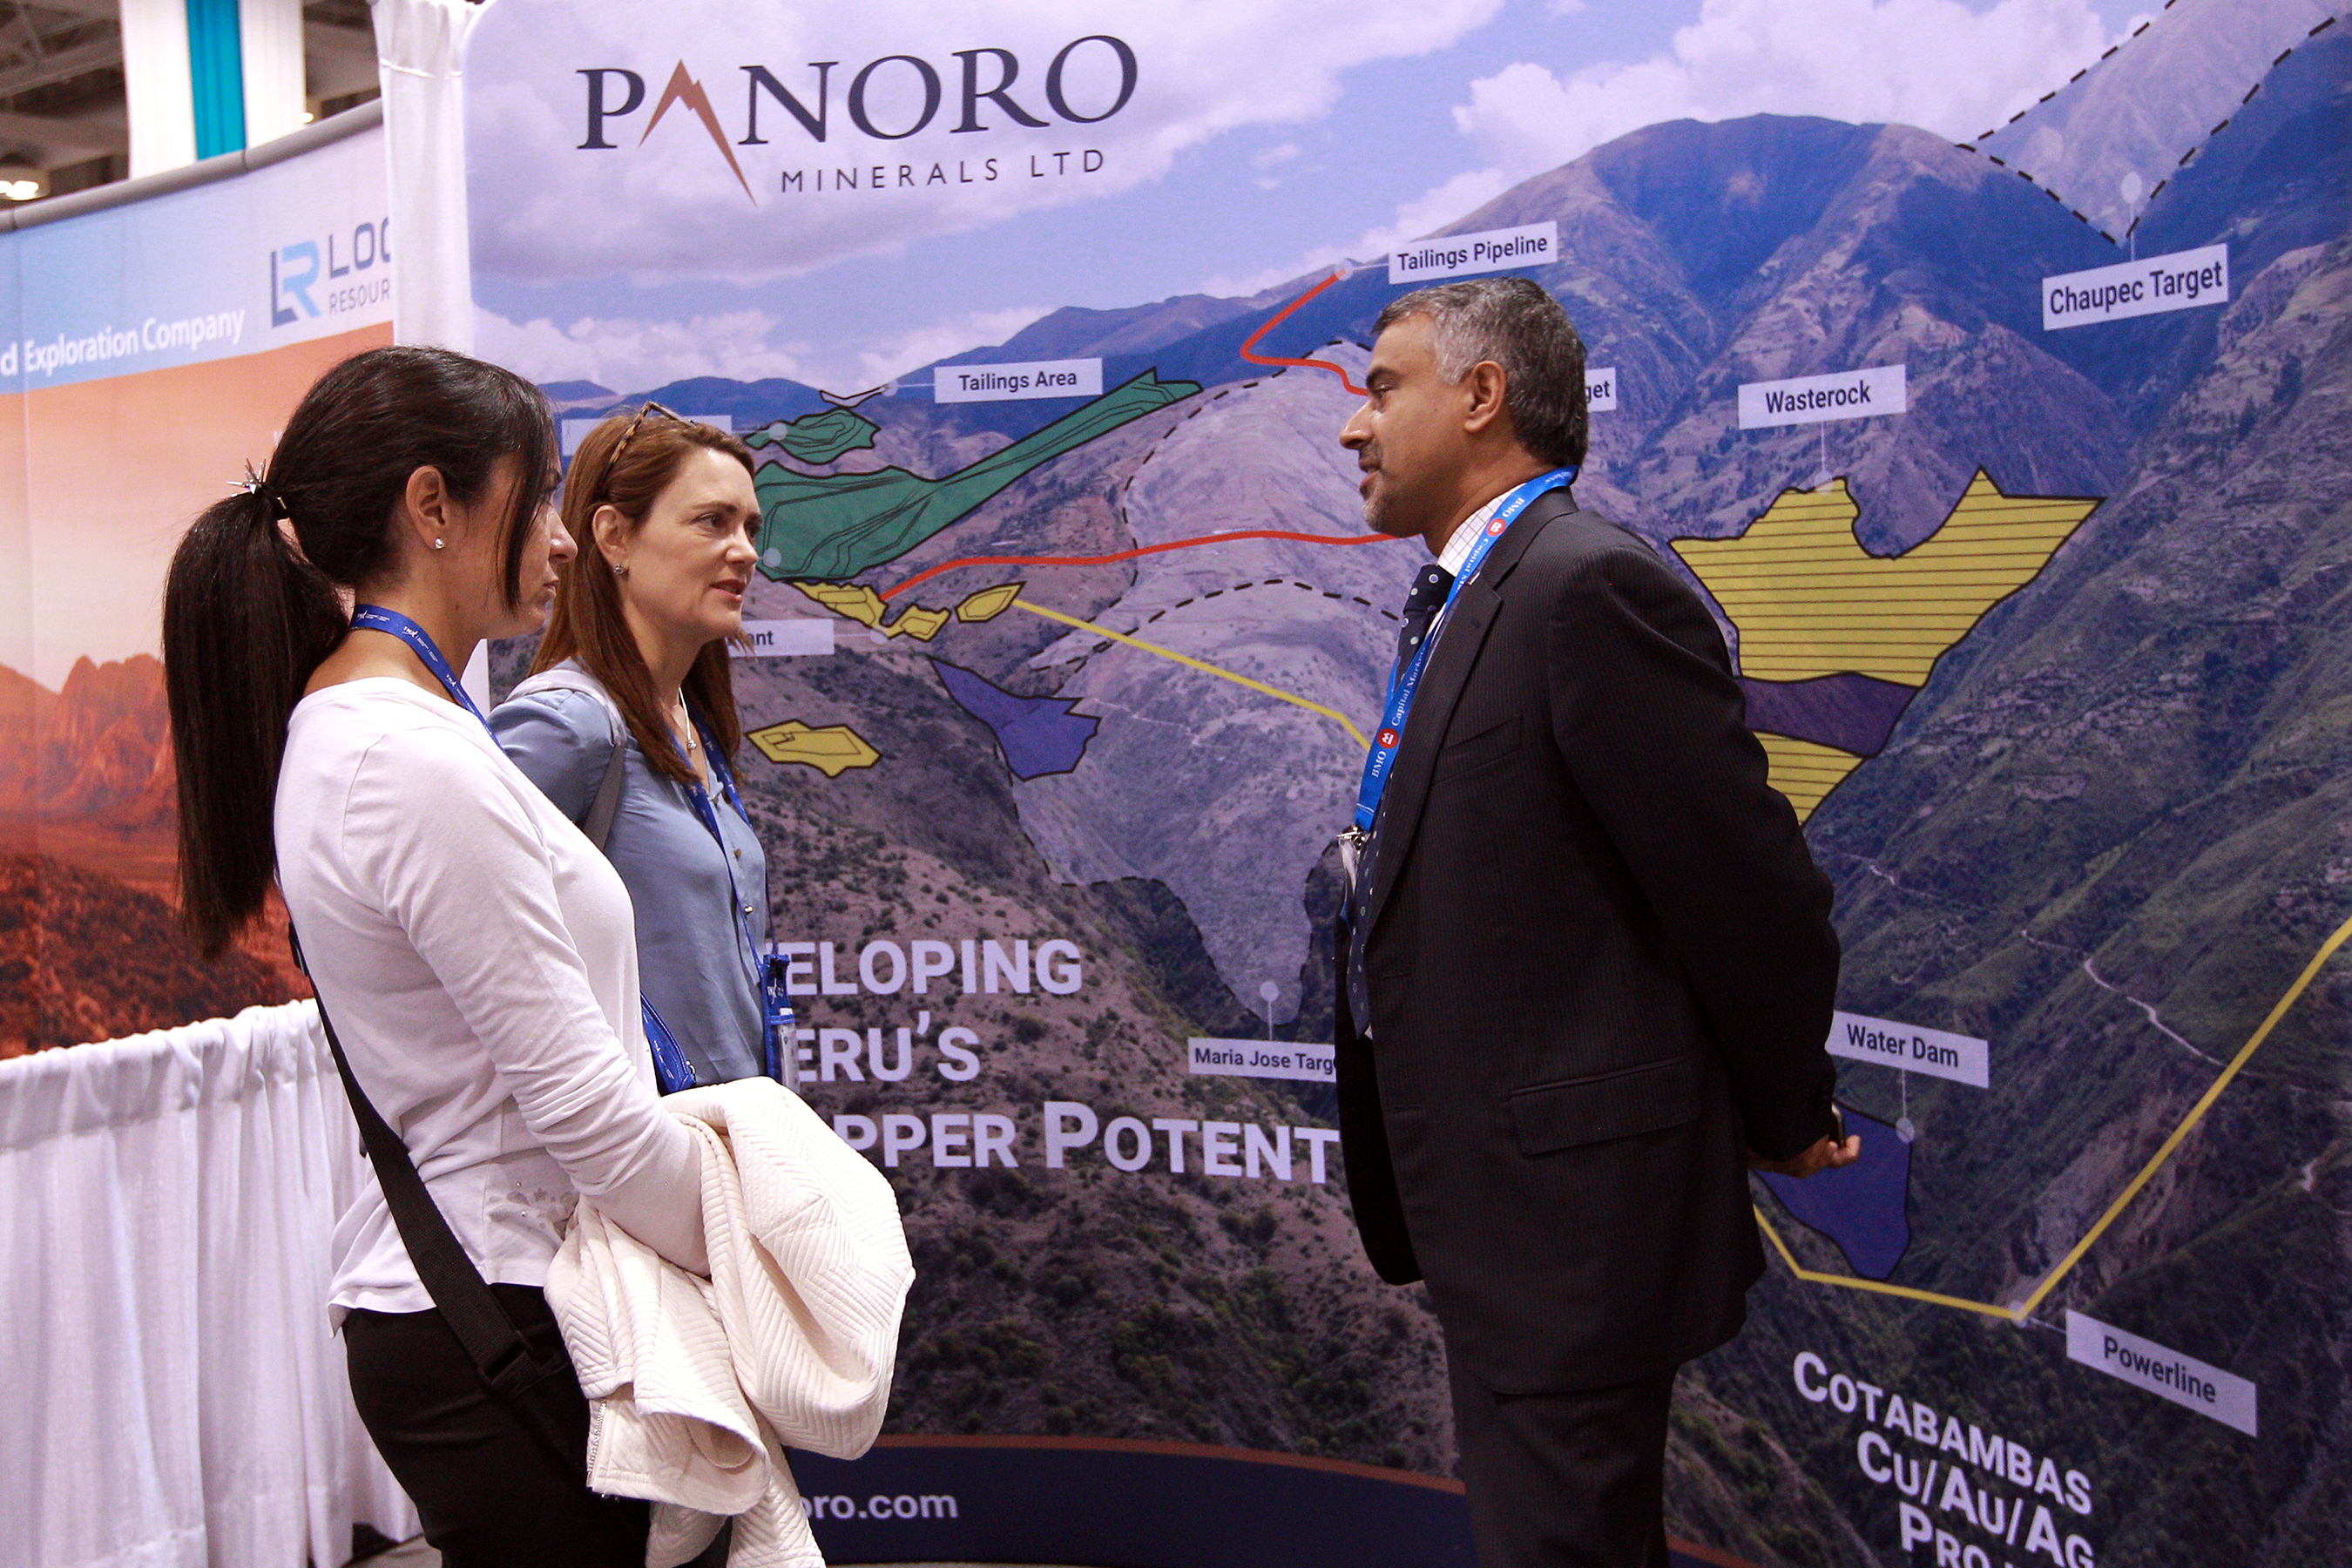 Panoro Minerals Ltd, Investors Exchange